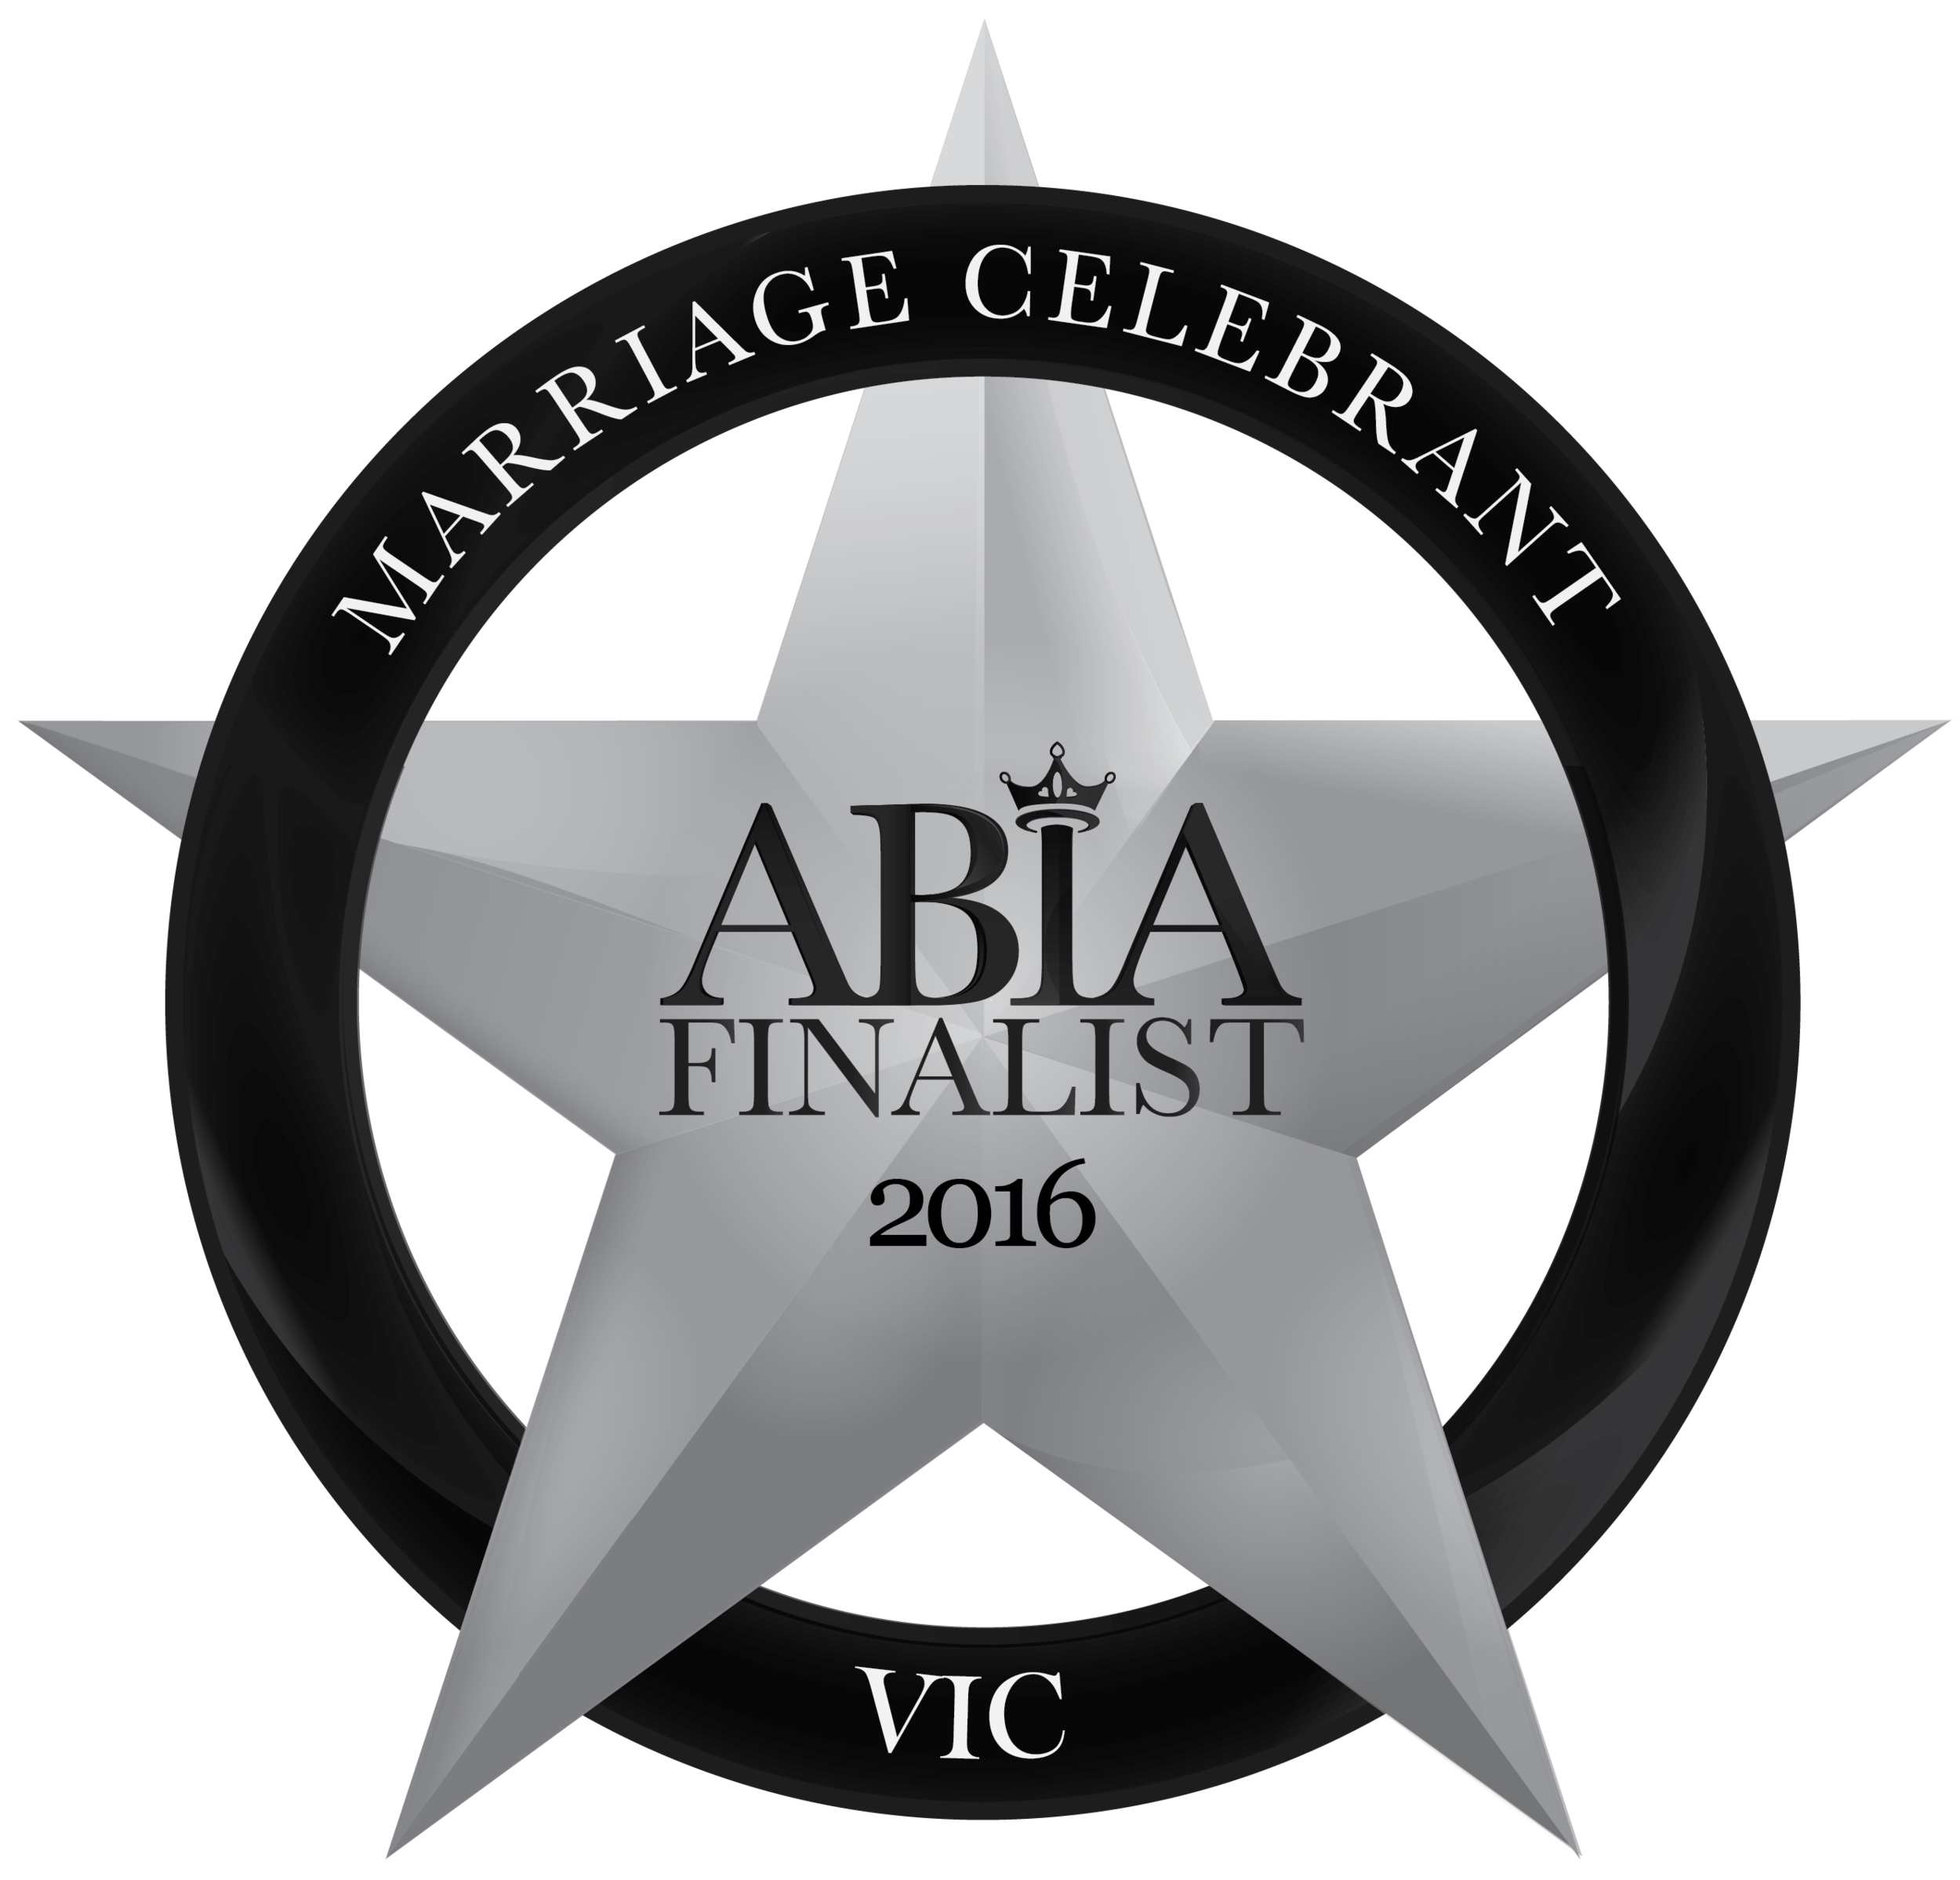 Celebrant-VIC-16_FINALIST.png